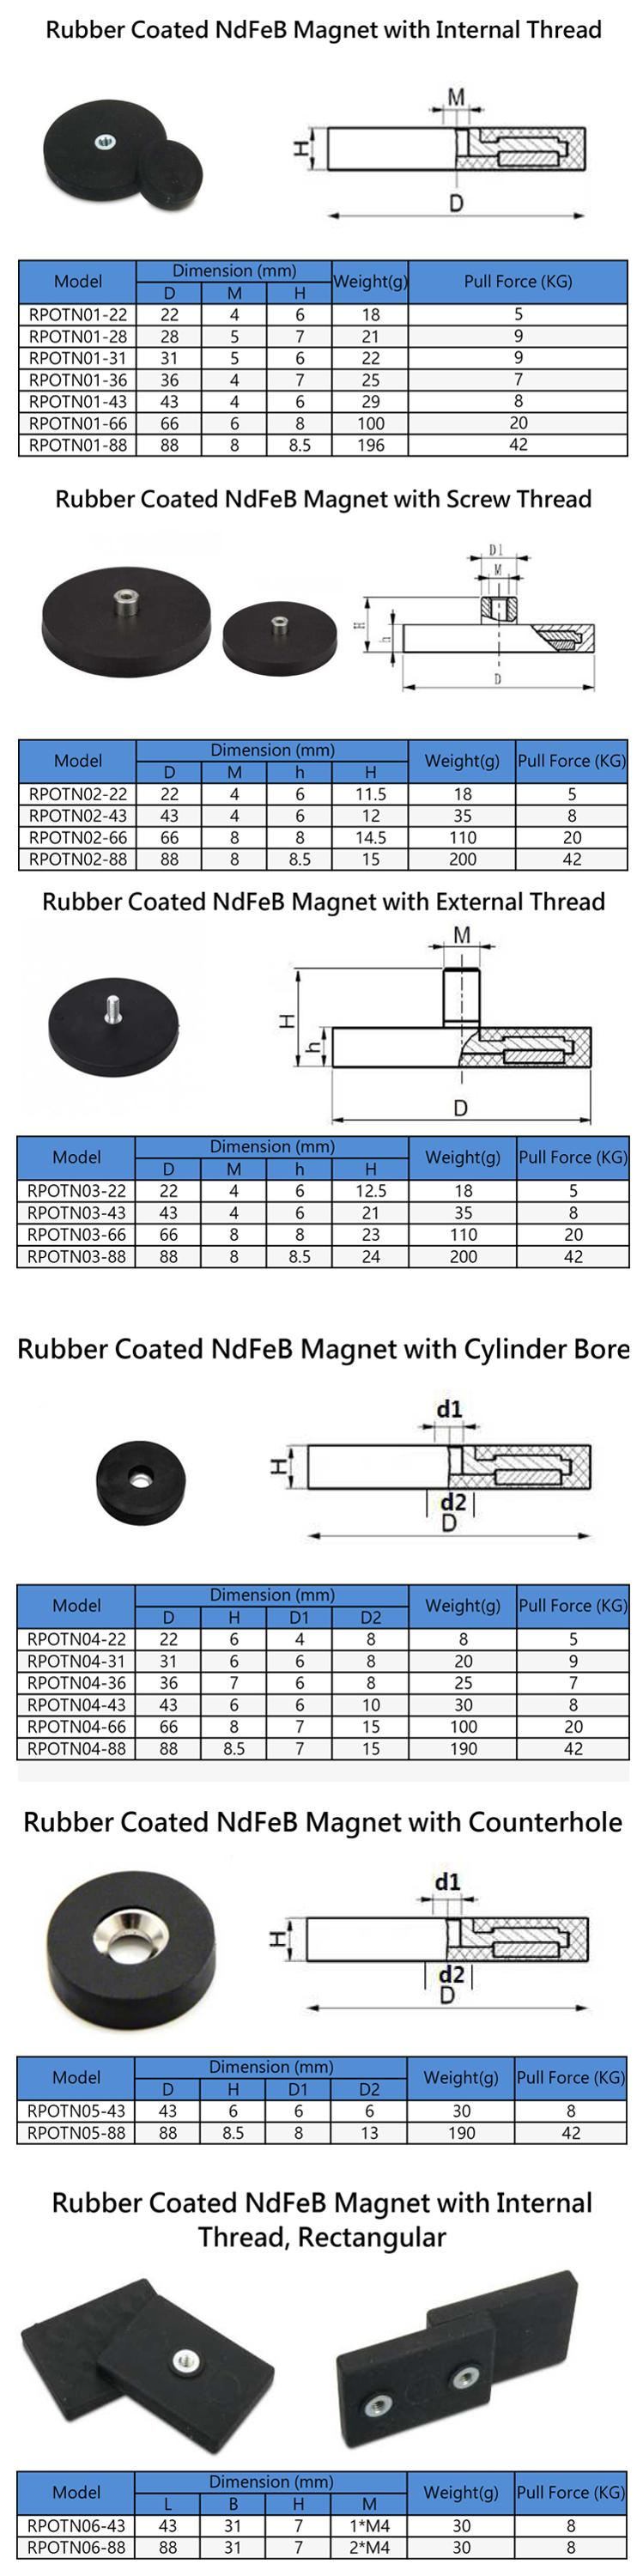 Rubber coated magnet